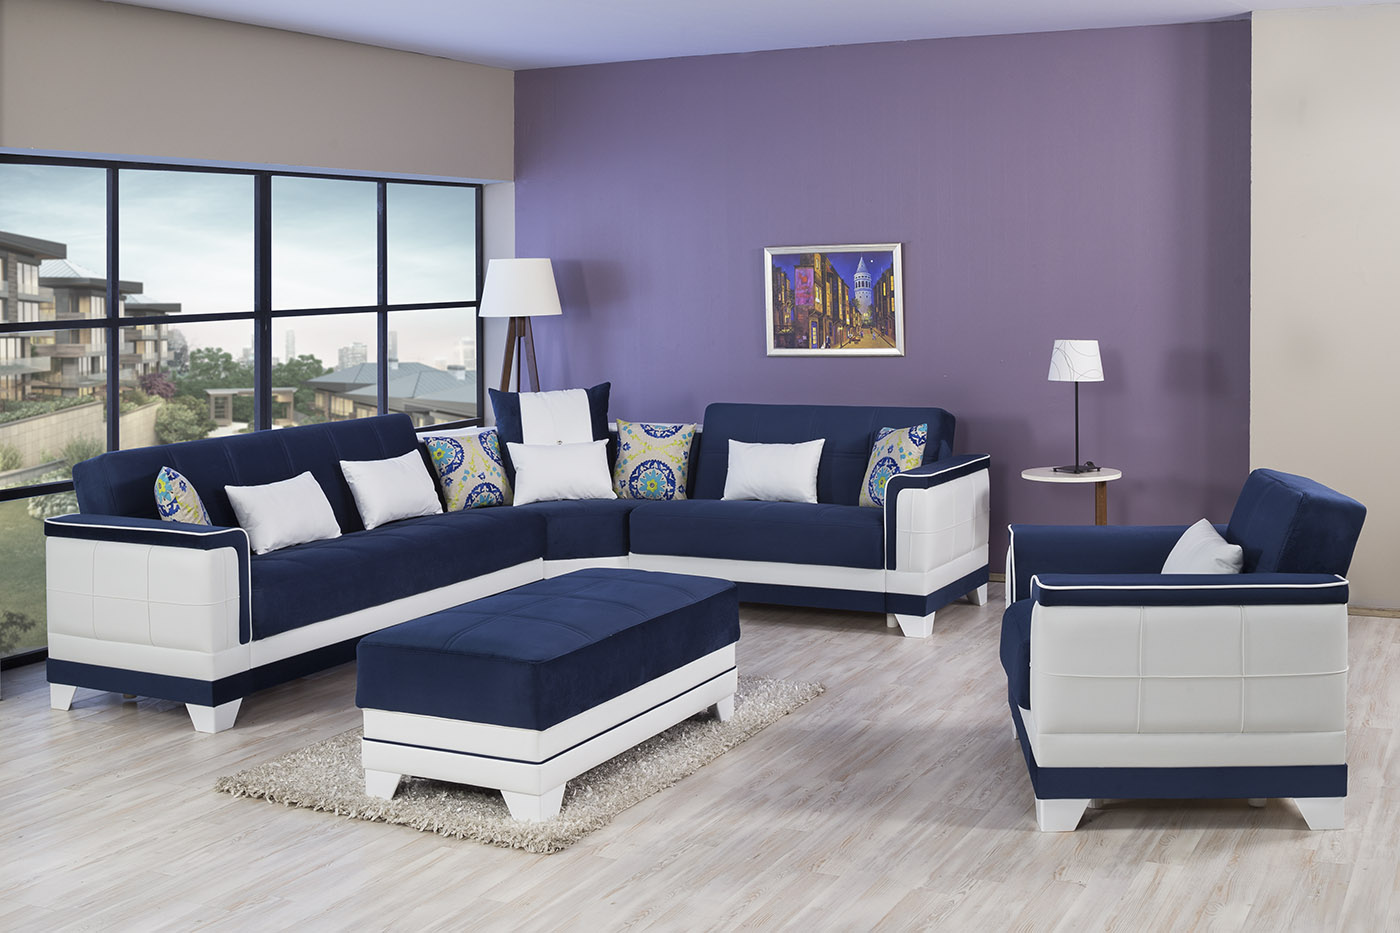 Four Seasons Riva Dark Blue Sectional Sofa By Casamode